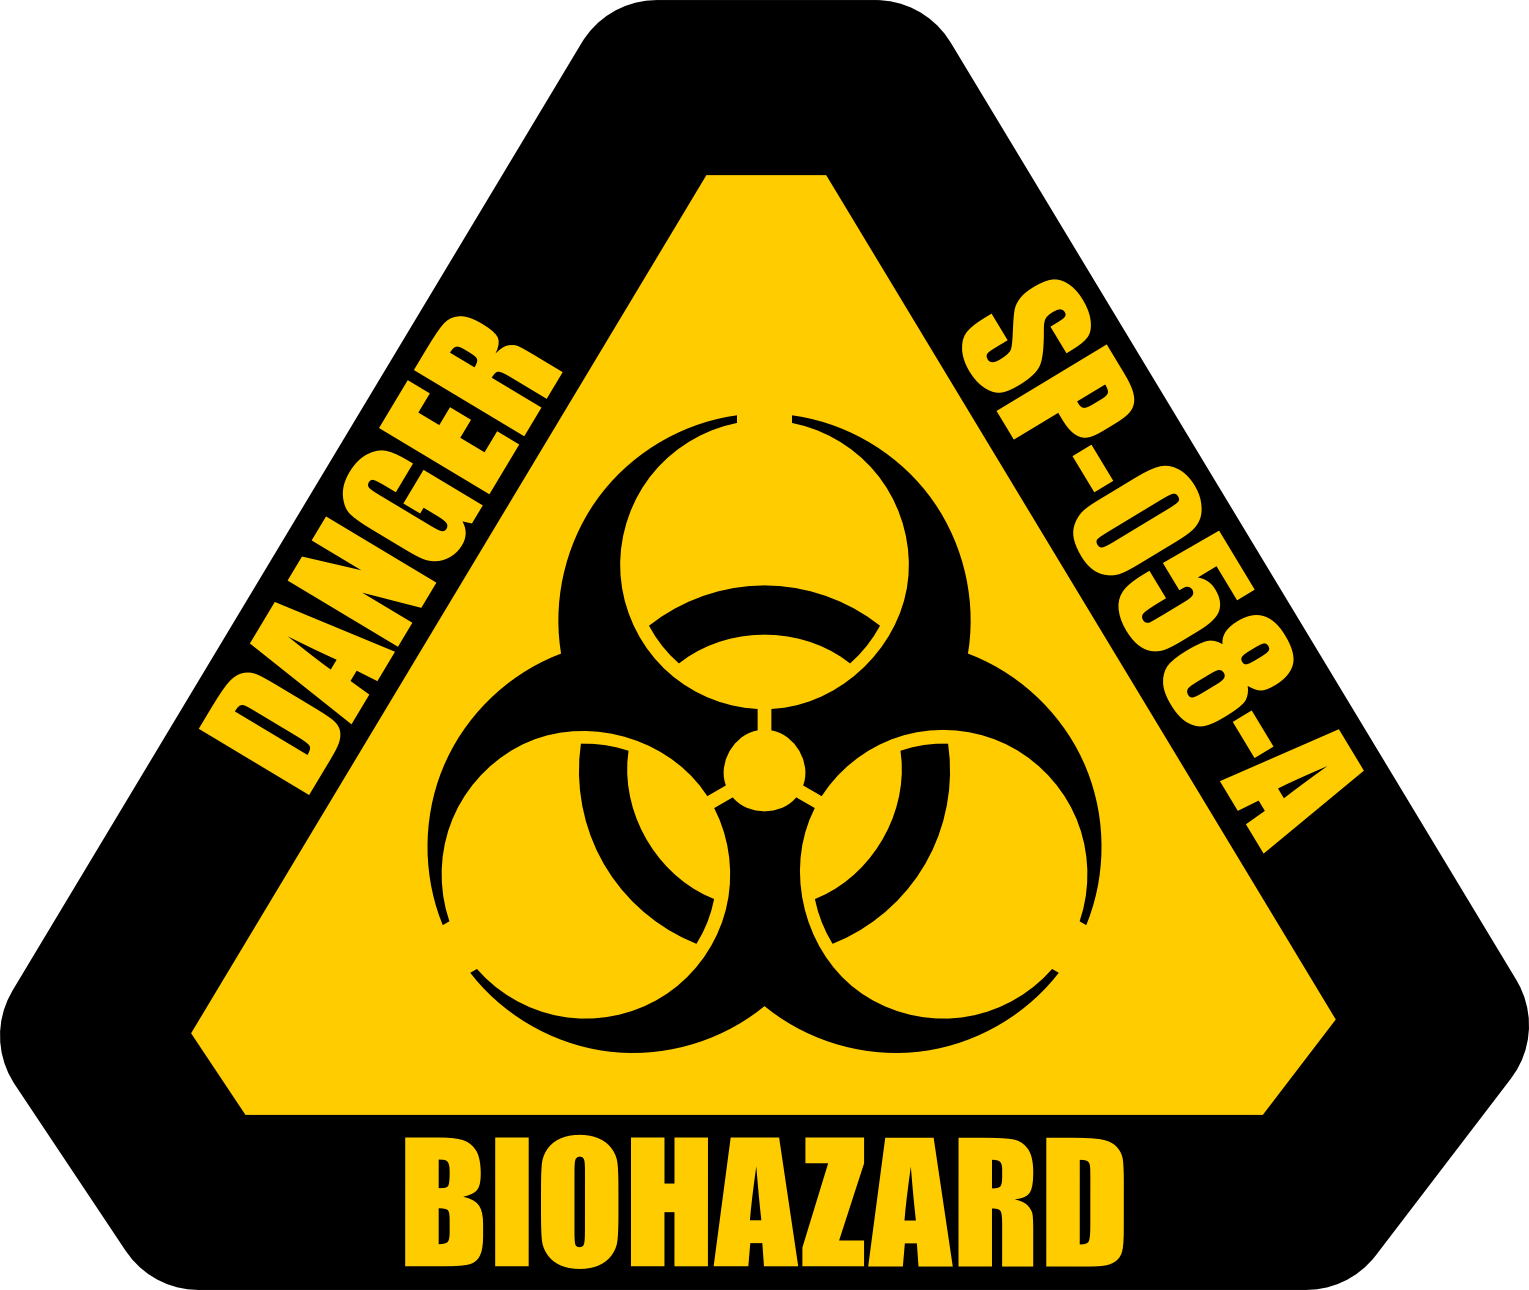 Biohazard Biohazard Warning Label by AlienSquid on DeviantArt